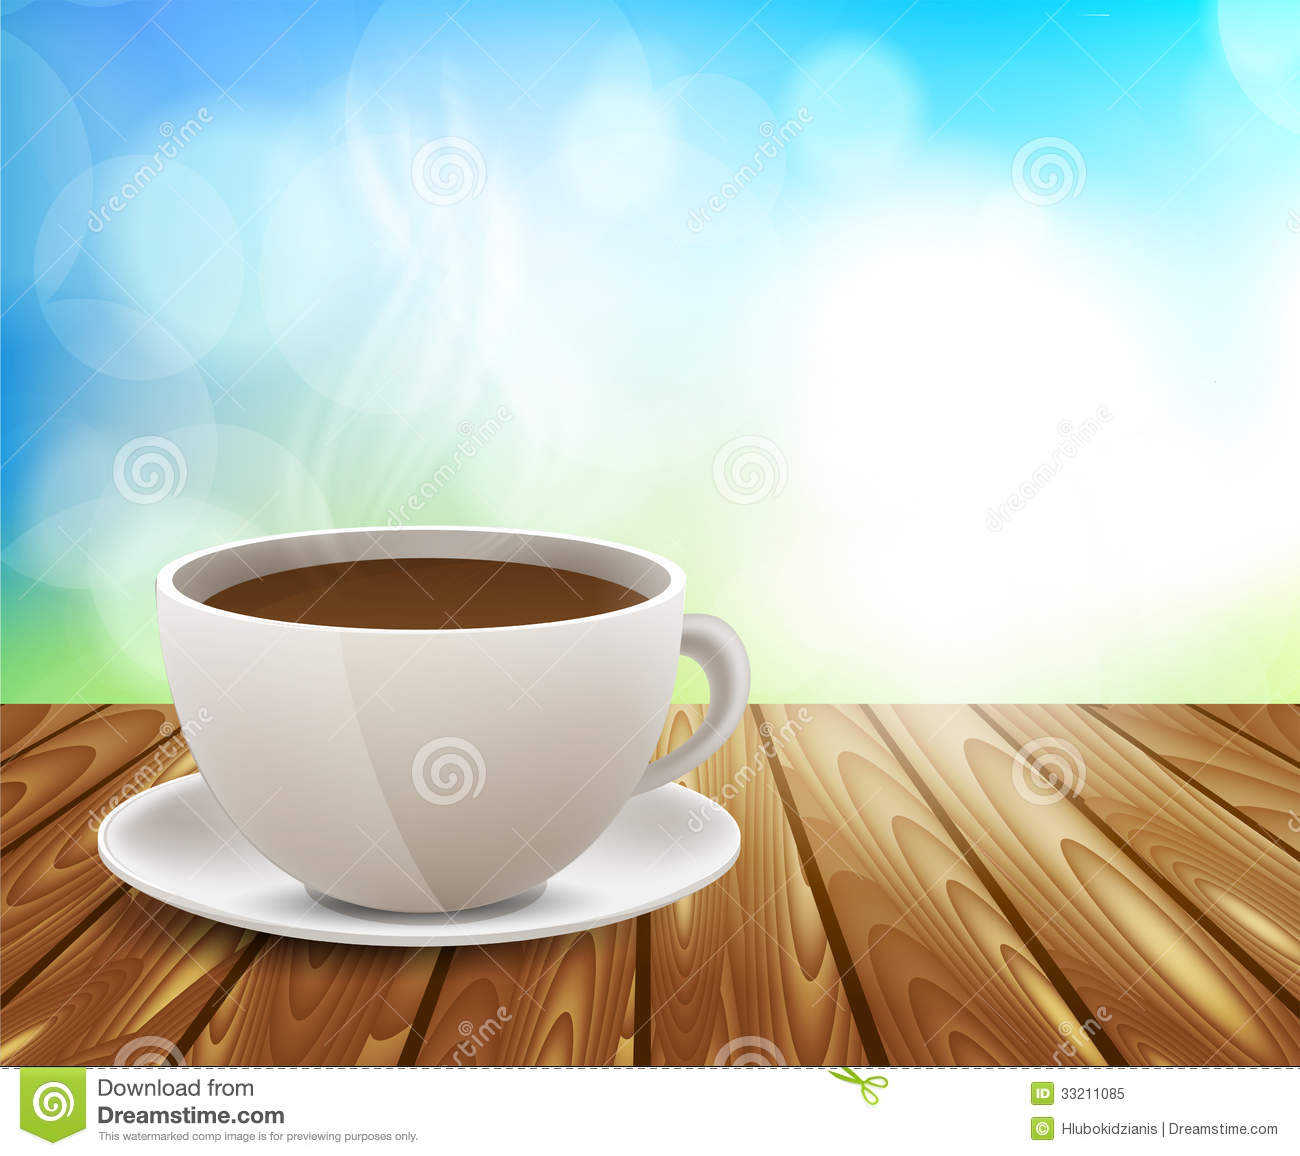 Coffee Cup On Wooden Table Royalty Free Stock Photo - Image: 33211085